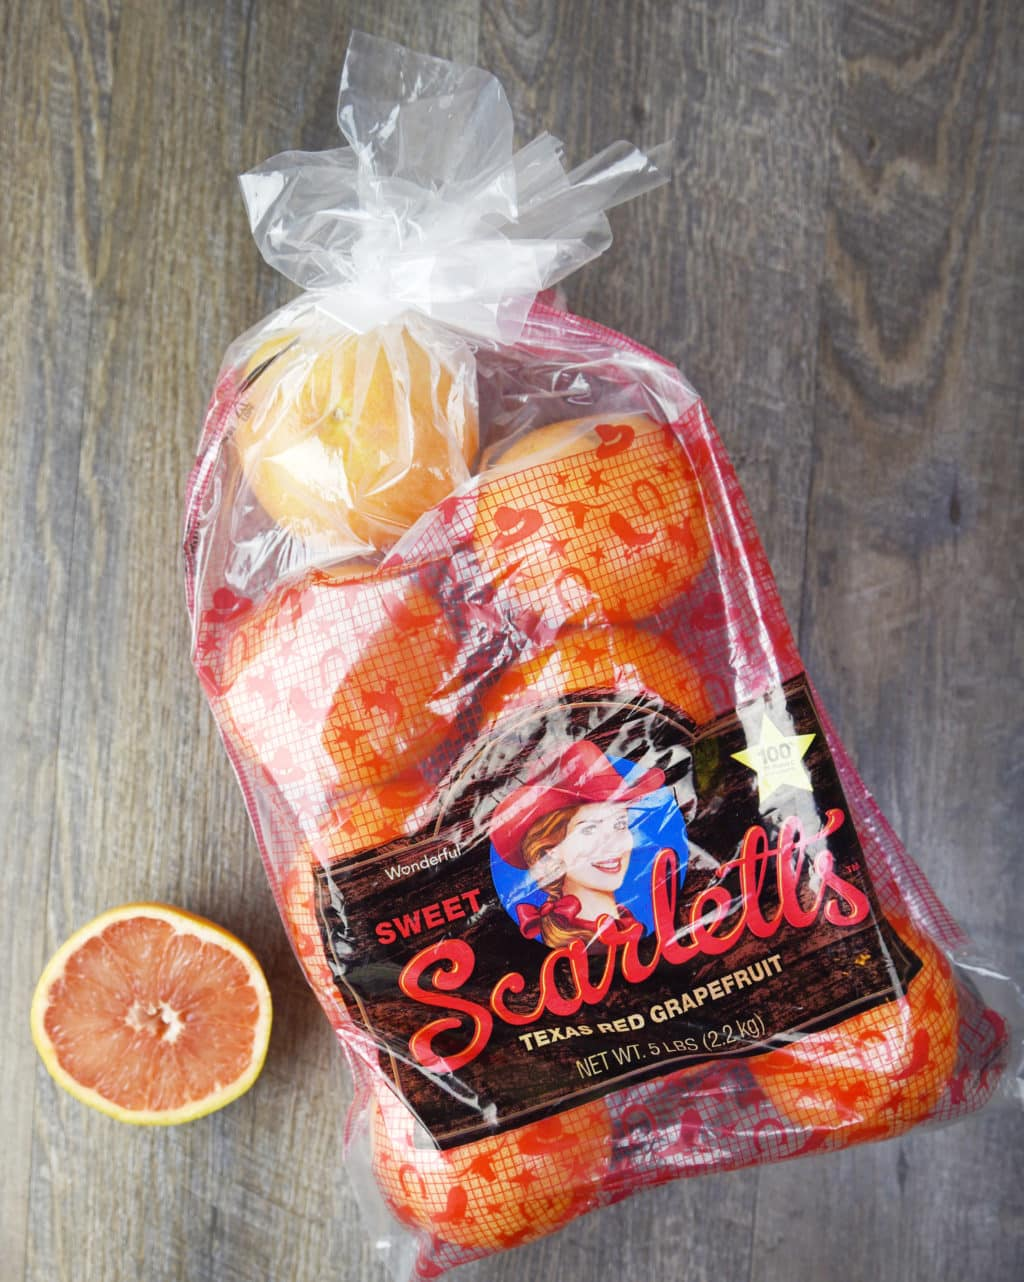 Sweet Scarlett's Grapefruit!